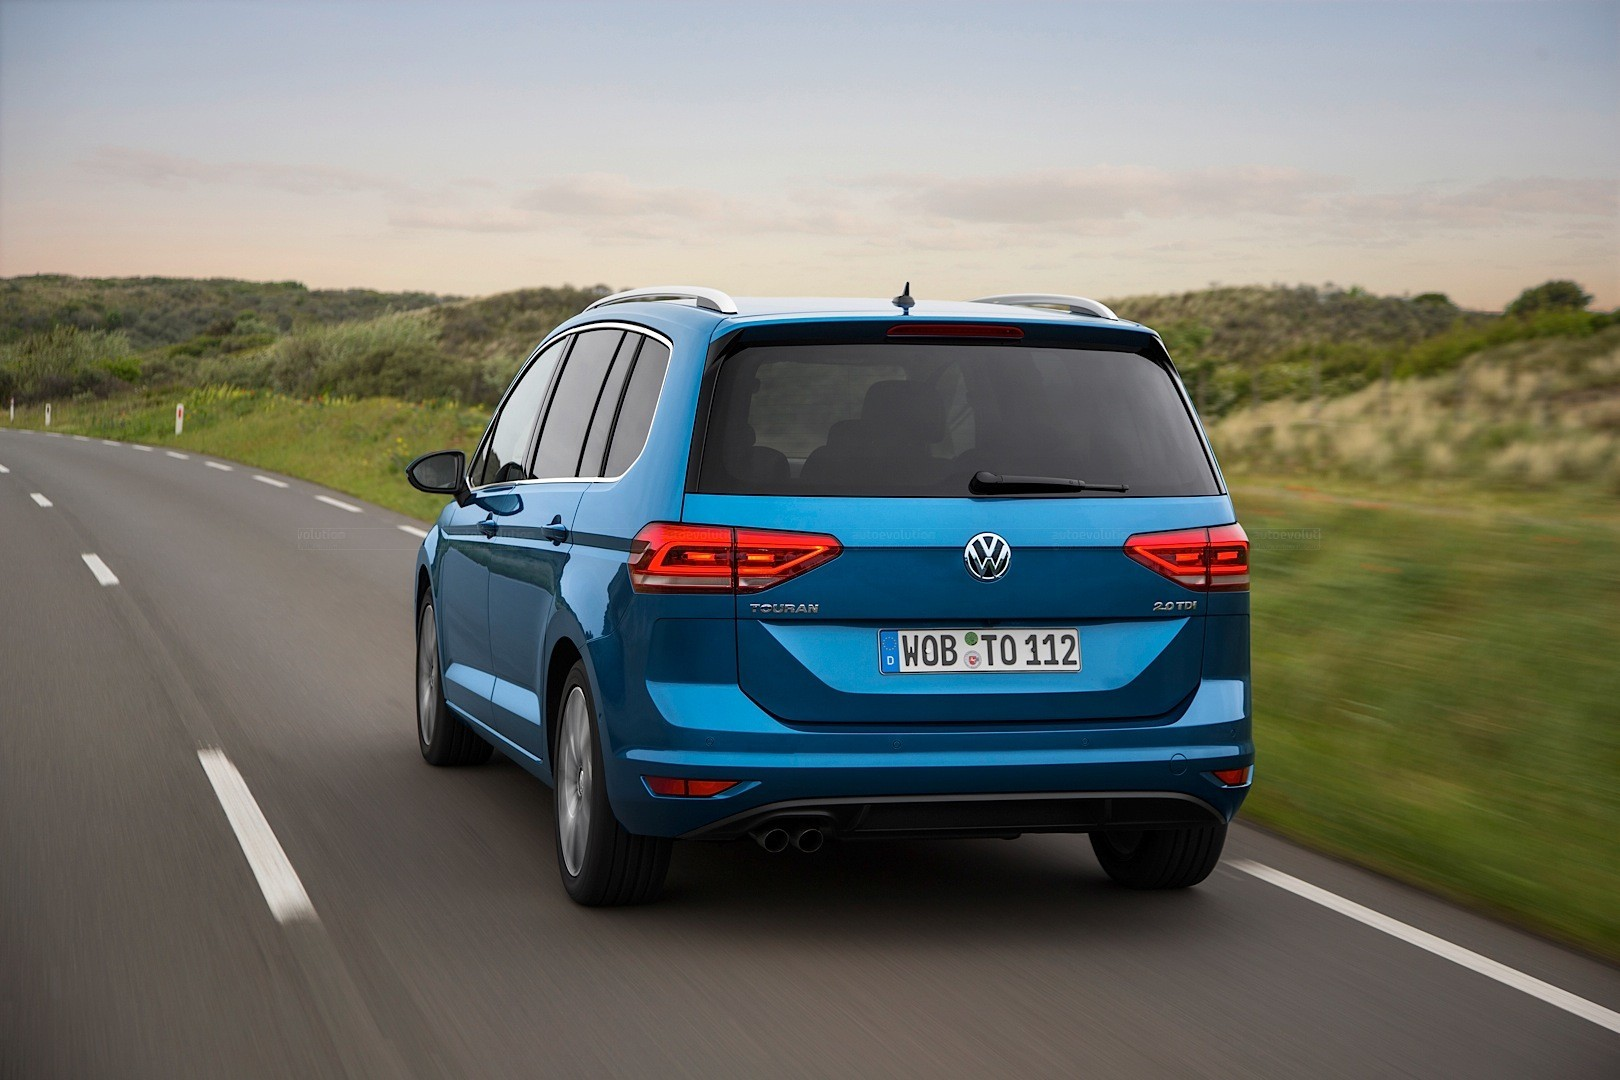 touran volkswagen vw tsi hp tdi golf hd picasso sharper looks than latest engines gets autoevolution million present exceeds production